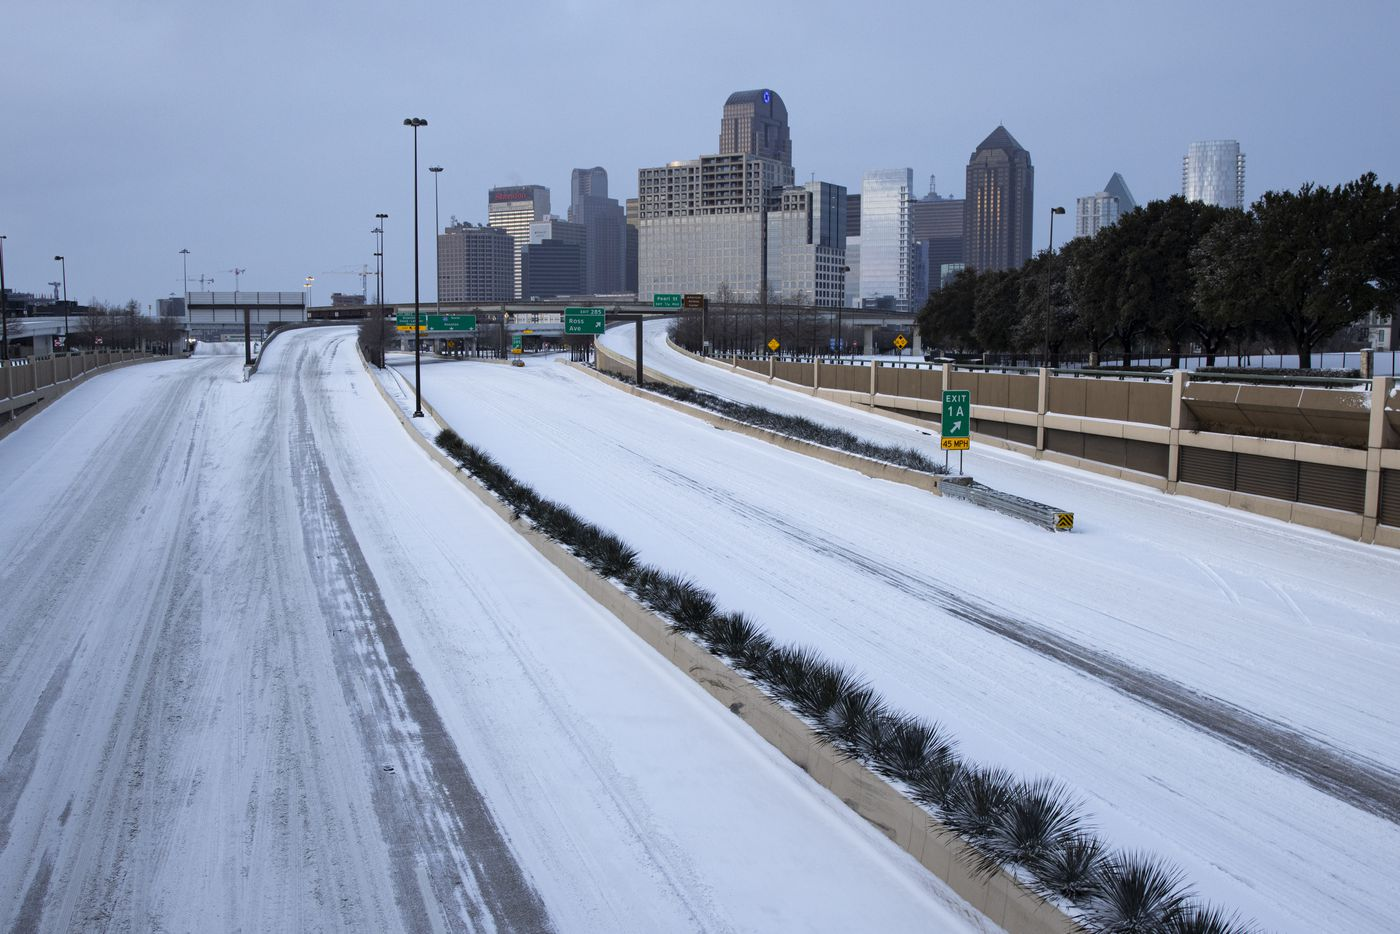 Snow covers US 75 heading into Downtown in Dallas on Monday morning, Feb. 15, 2021. (Juan Figueroa/ The Dallas Morning News)